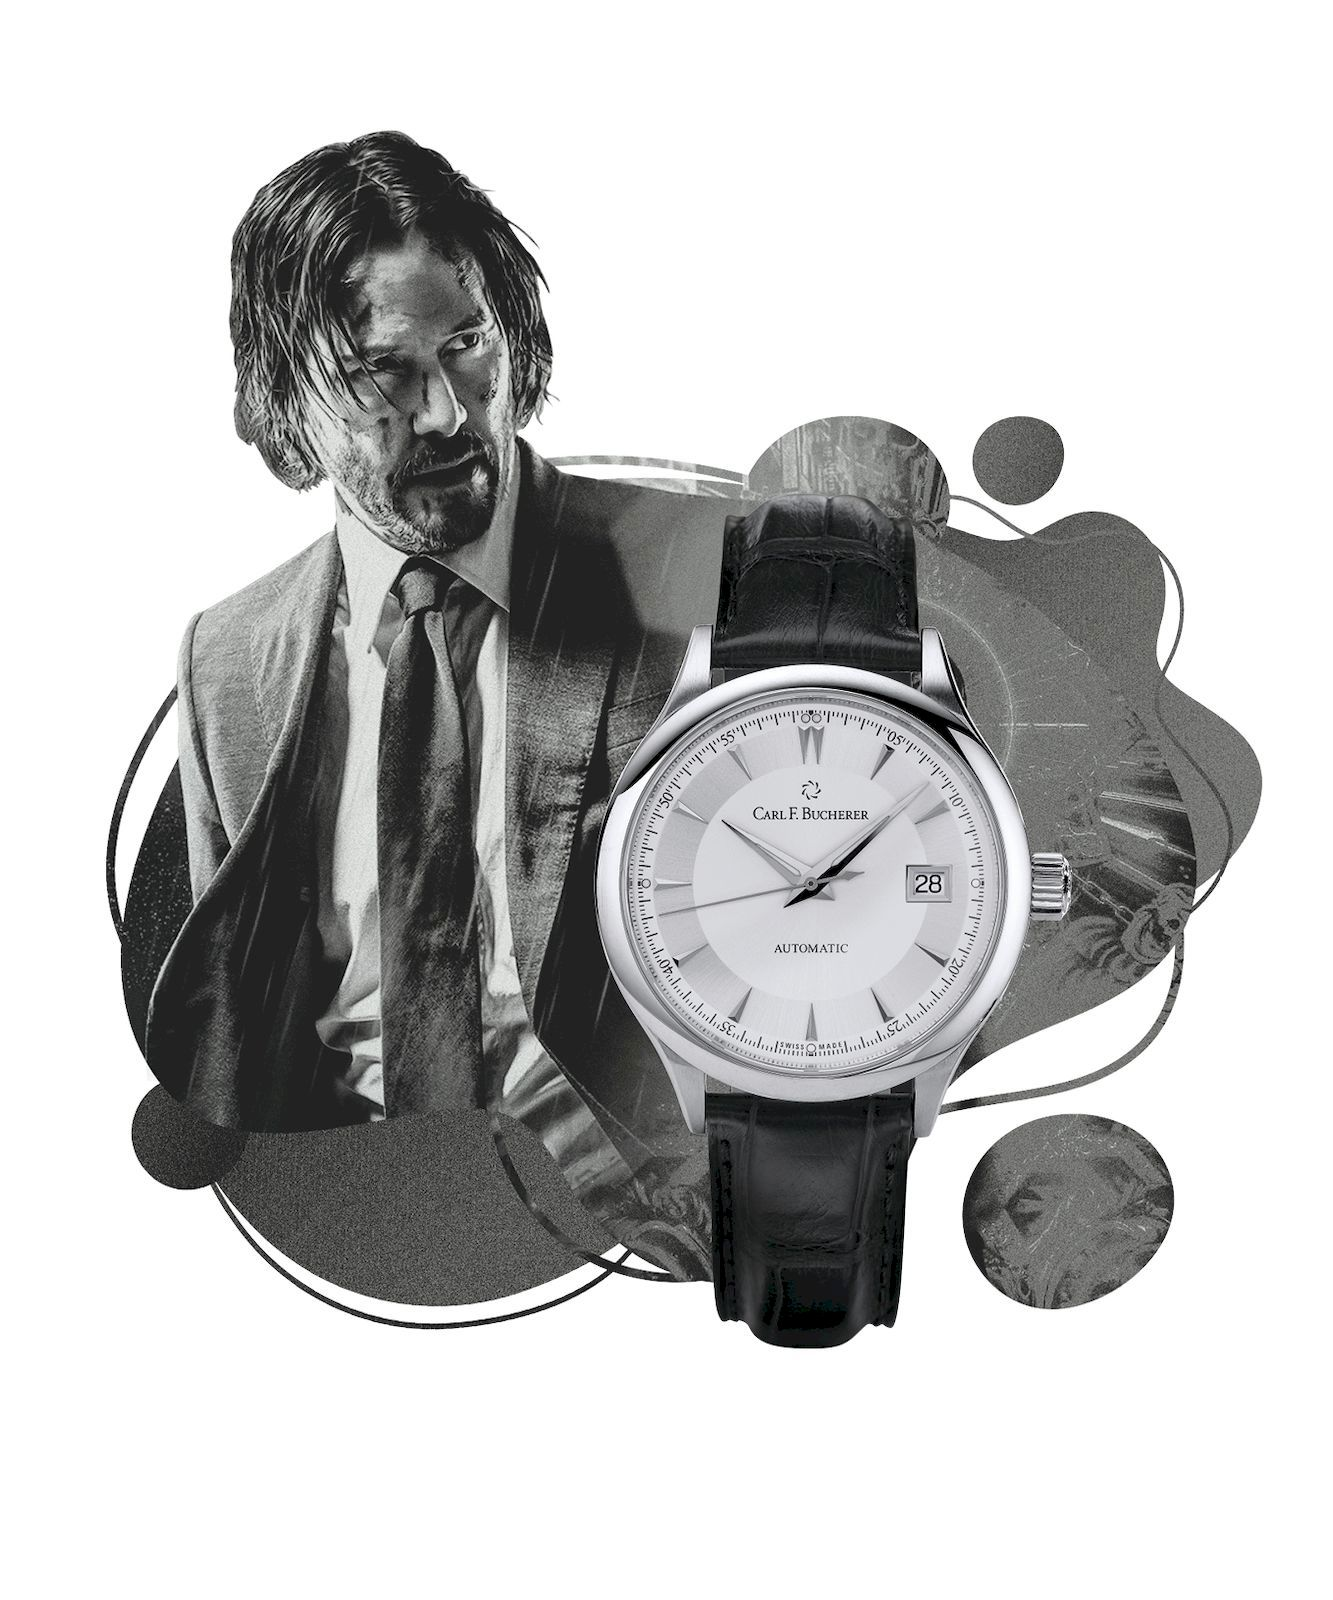 The watches that made cameo appearances on the wrists of Hollywood's leading men